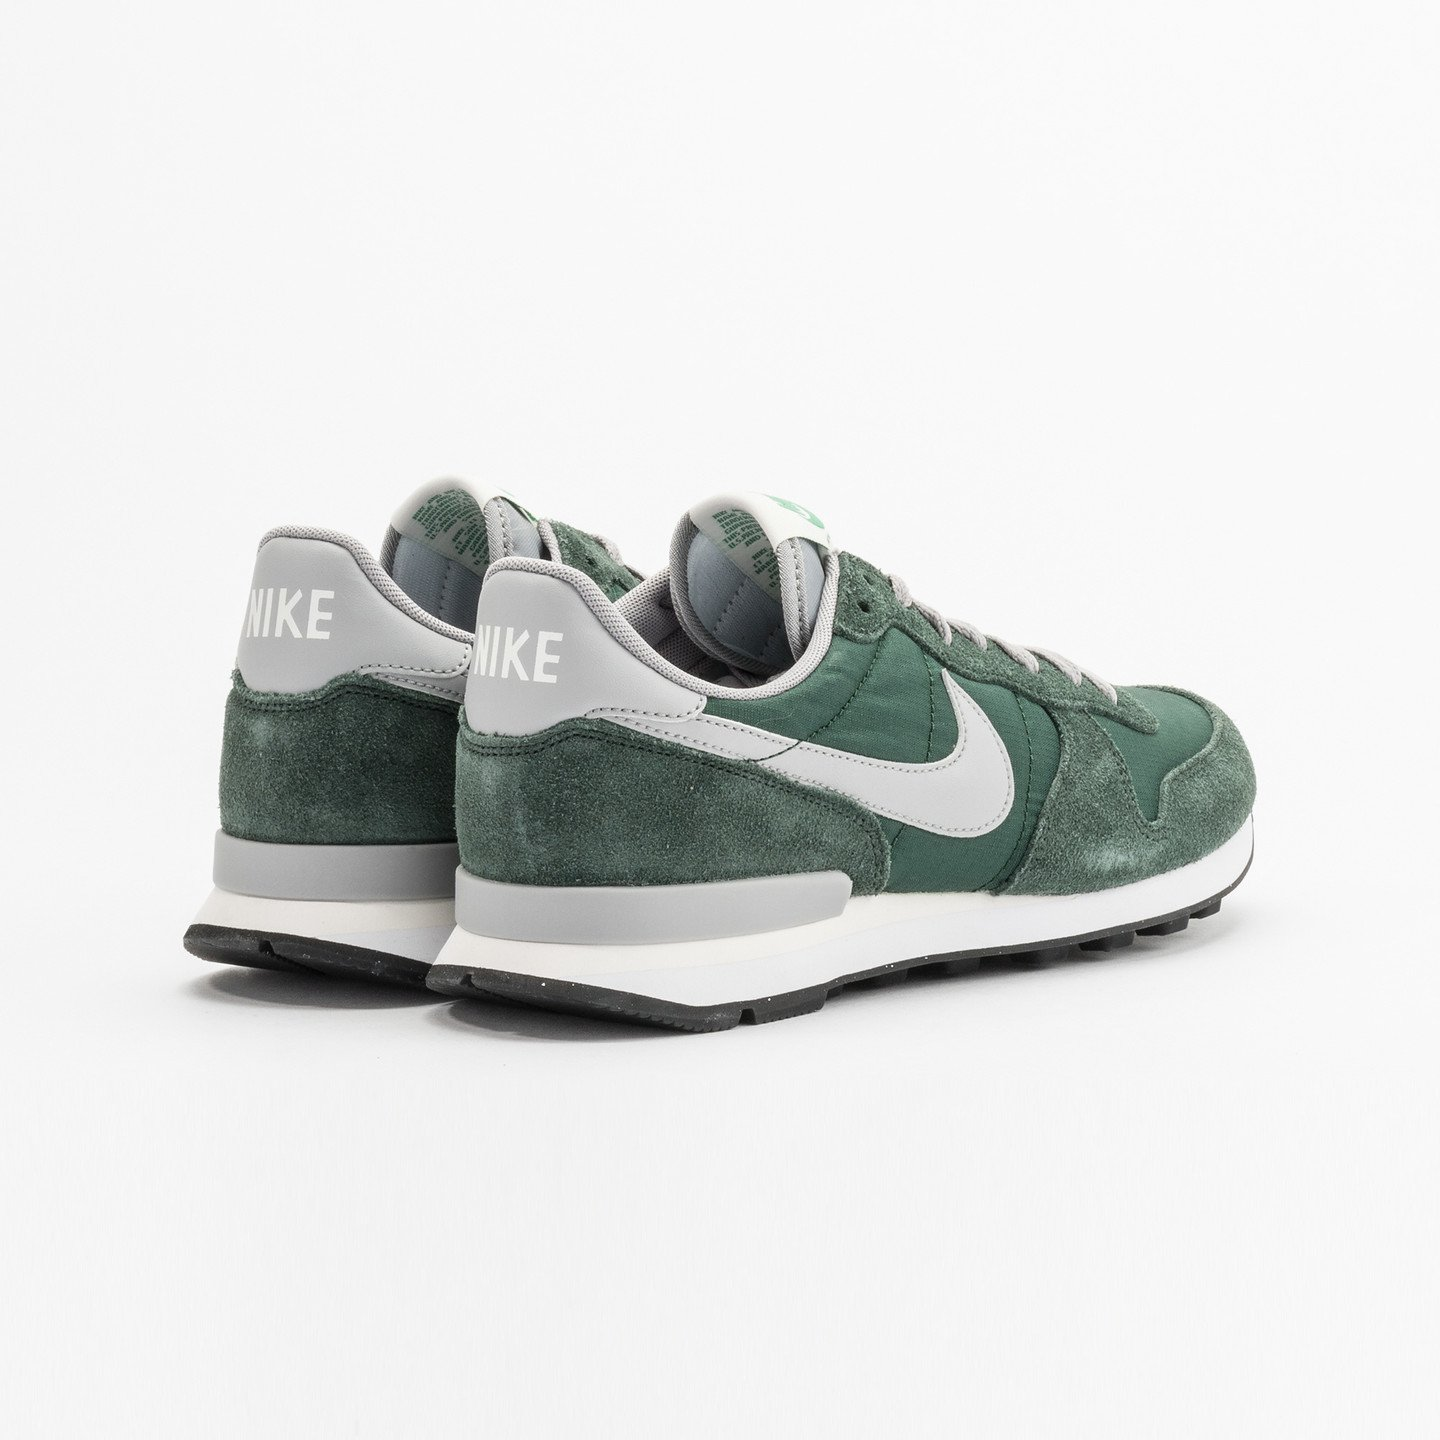 Nike Internationalist Gorge Green / Matte Silver 828041-300-43